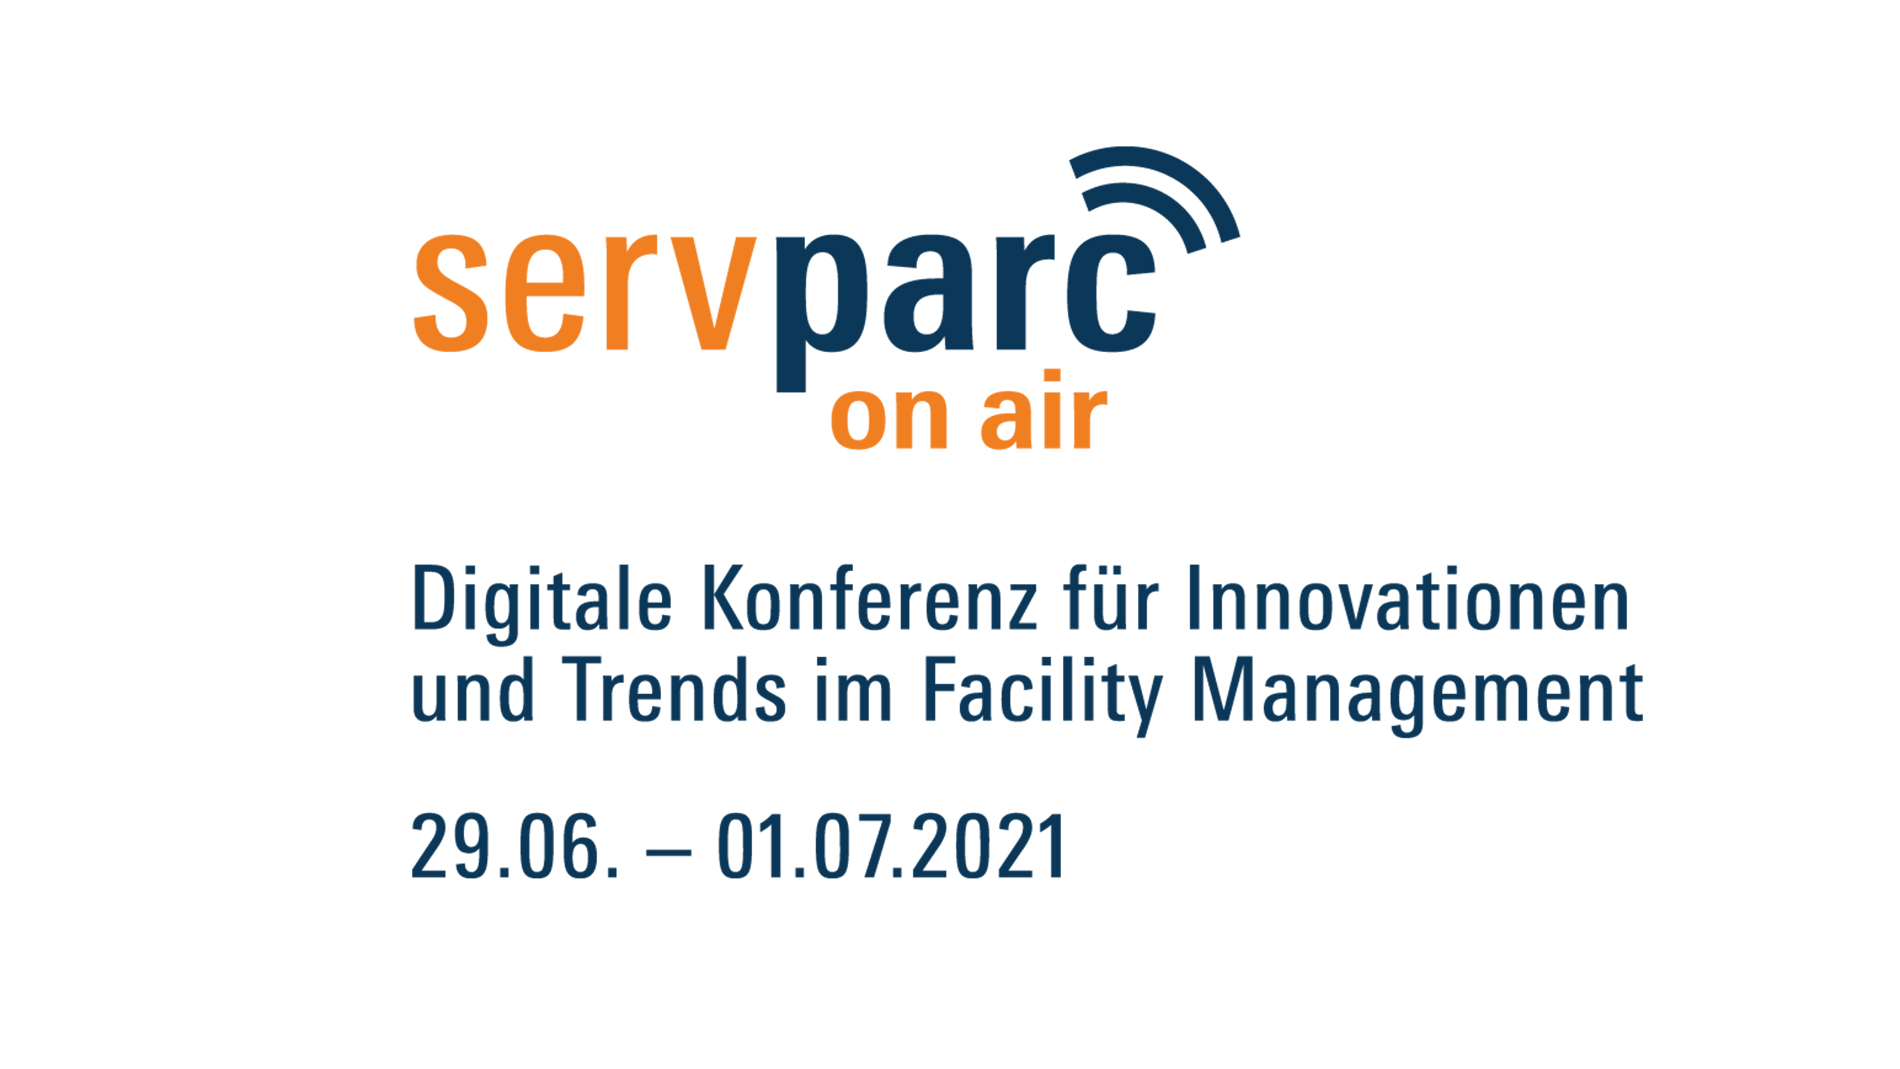 servparc-on-air-2021_content